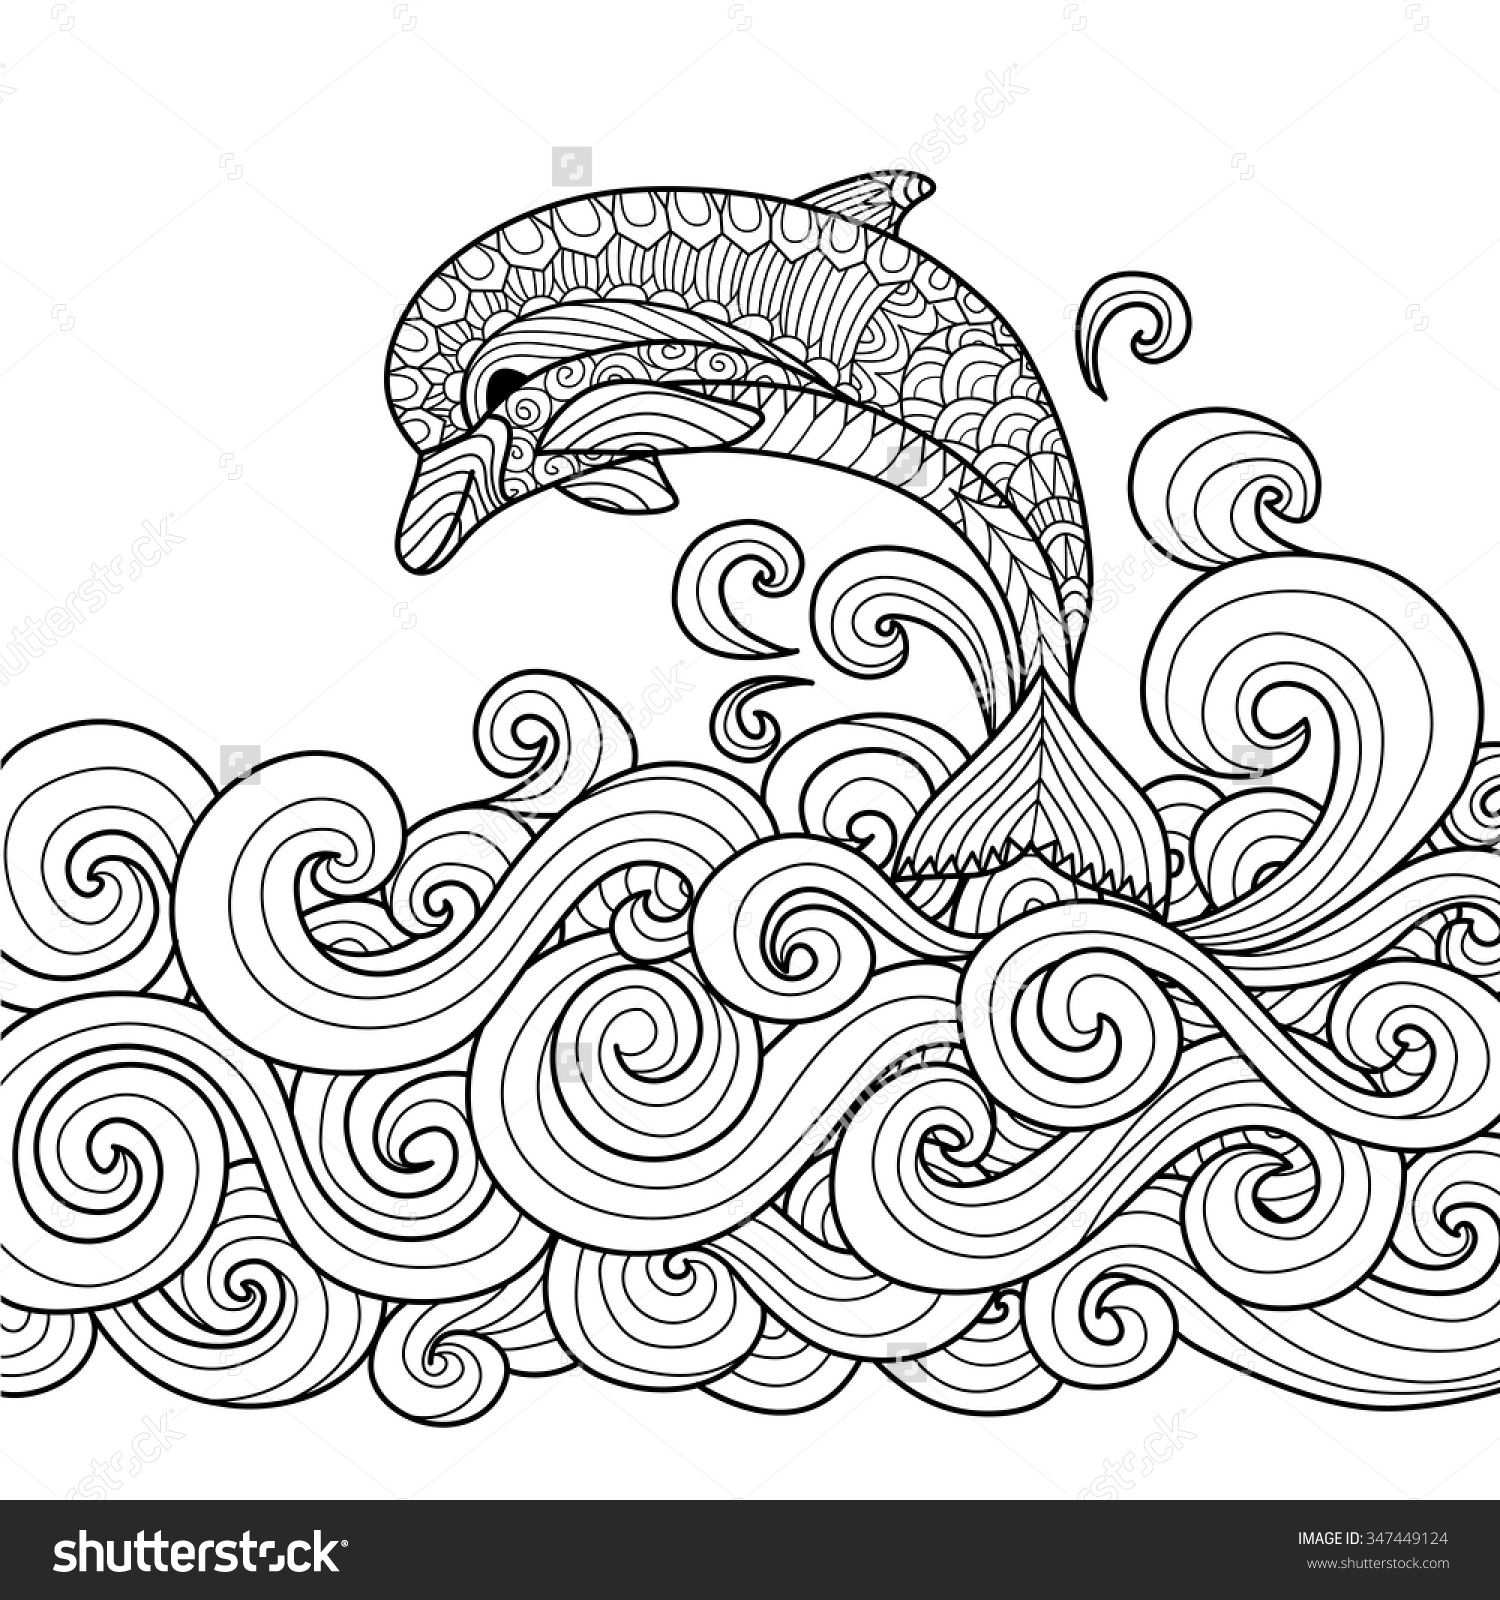 Disney zentangle coloring pages - Hand Drawn Zentangle Dolphin With Scrolling Sea Wave For Coloring Book For Adult